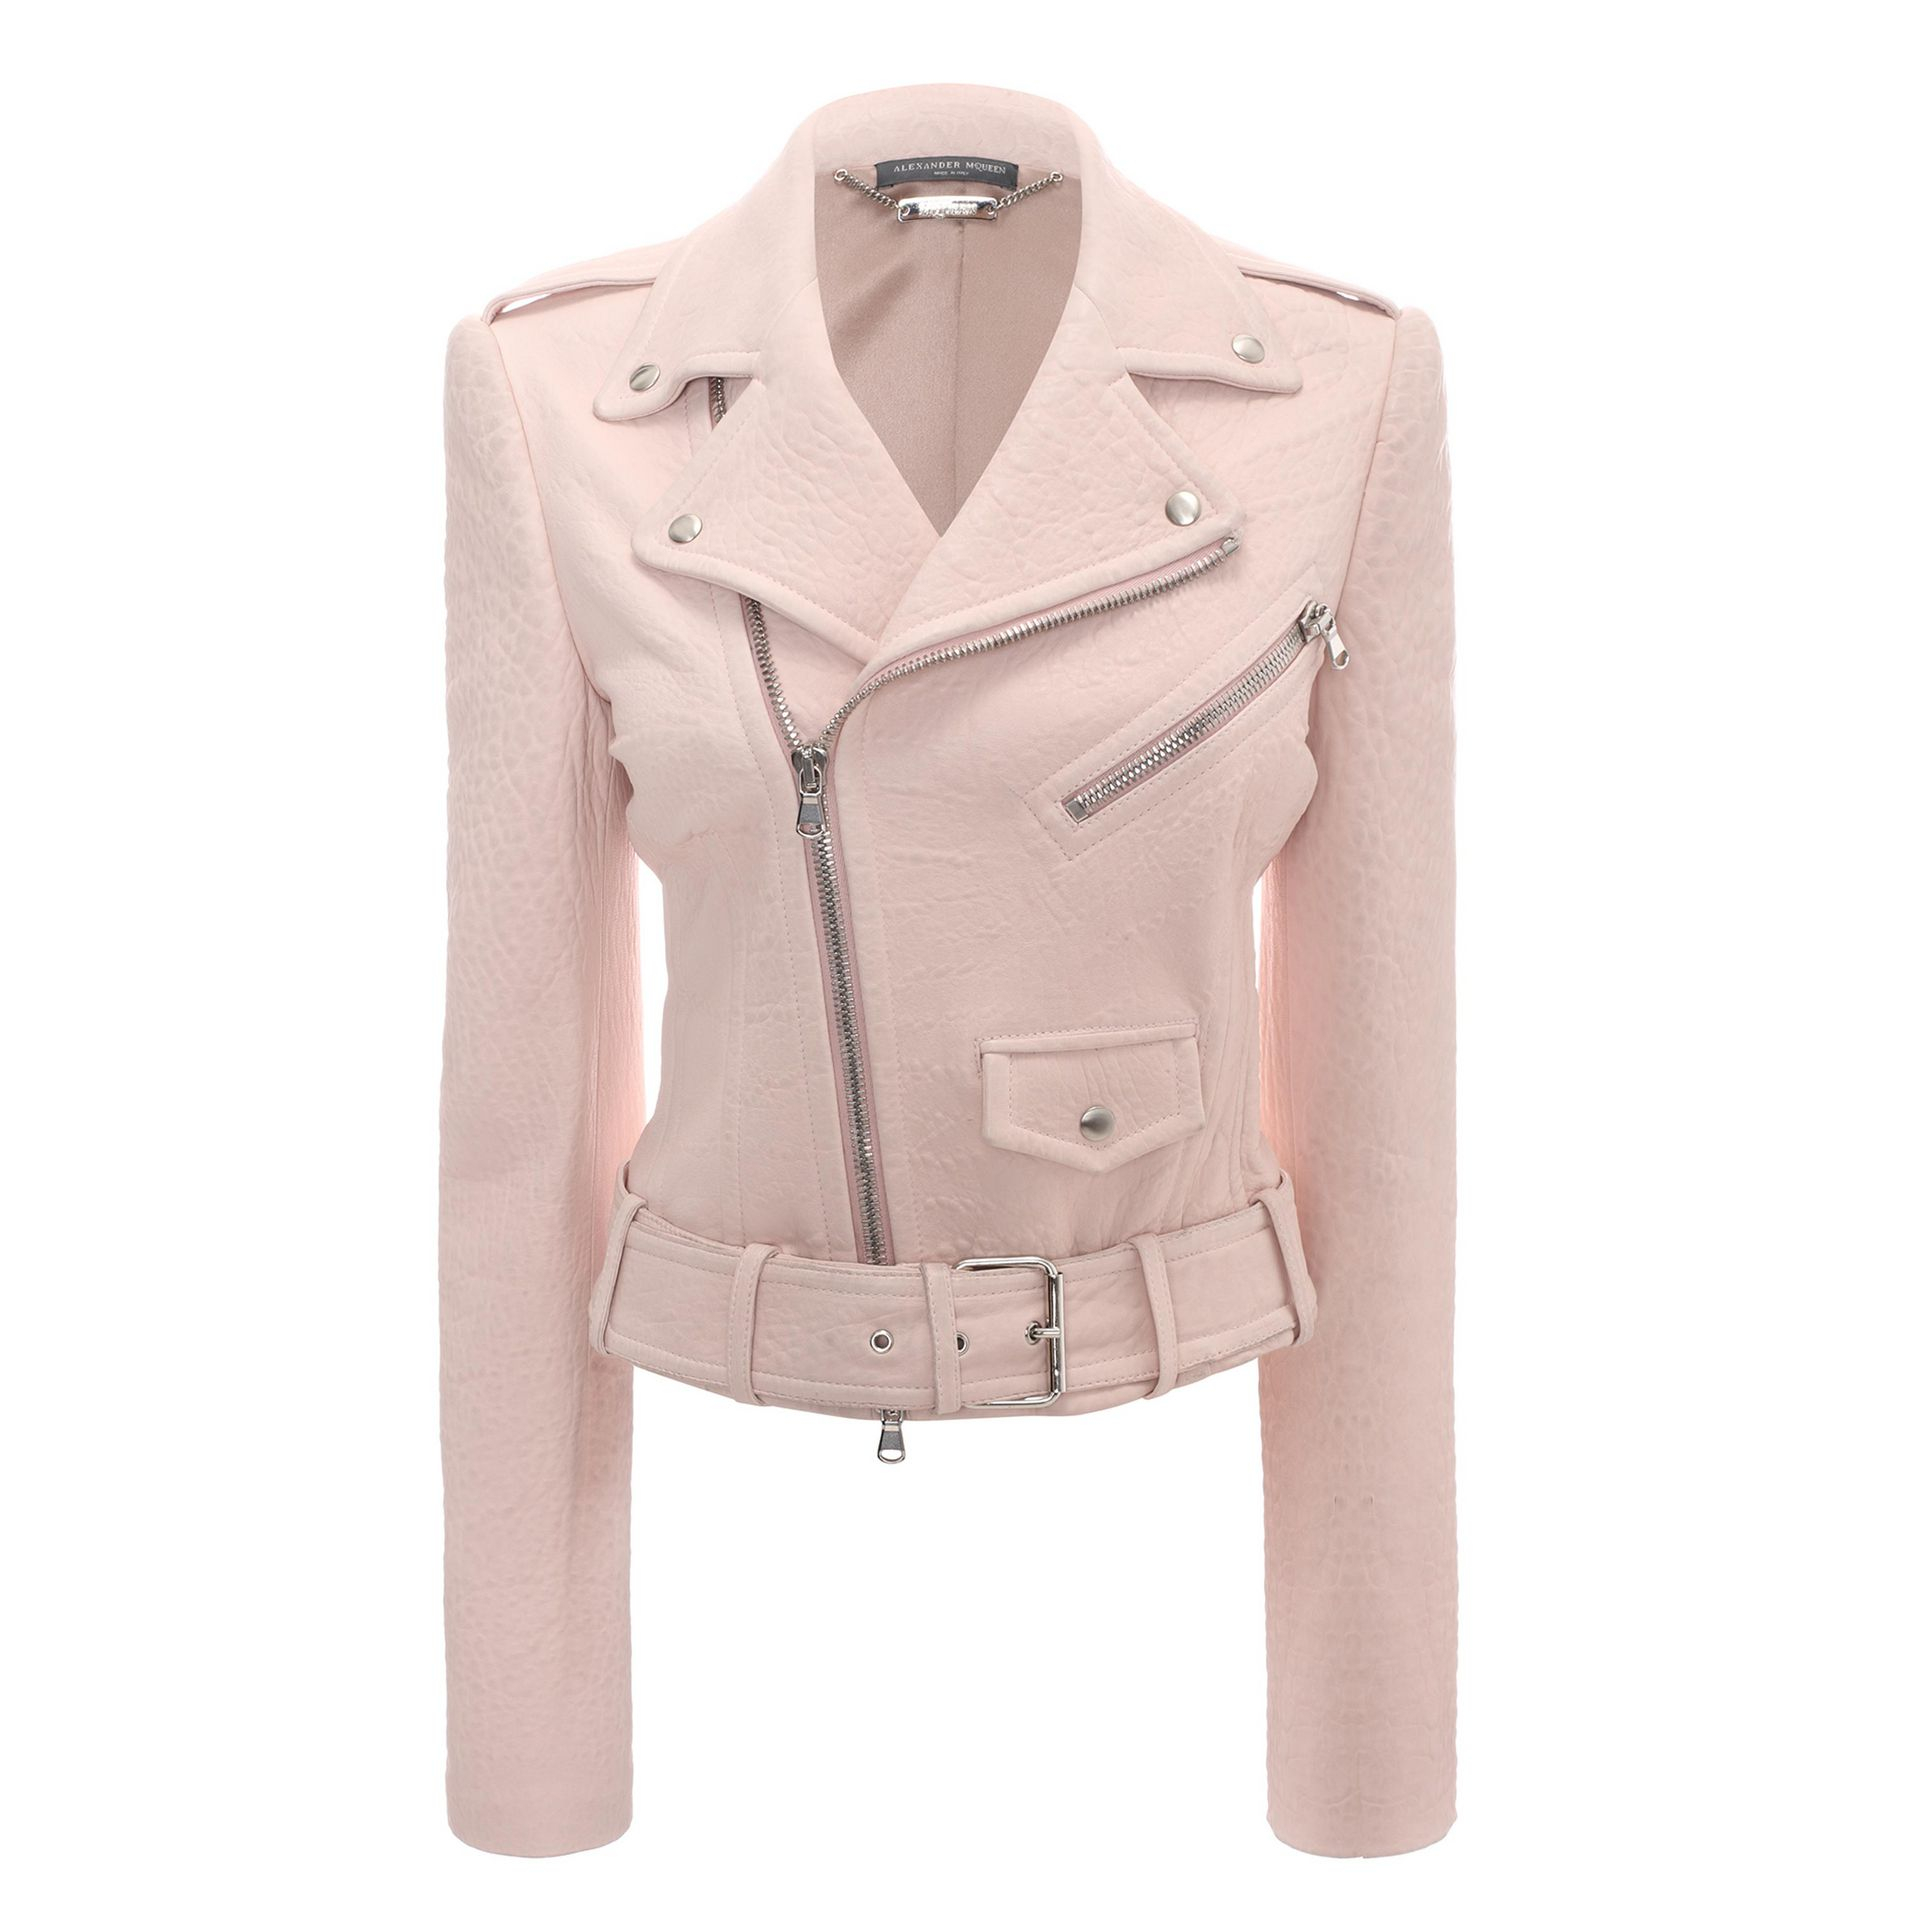 Alexander mcqueen Cropped Leather Biker Jacket in Pink | Lyst